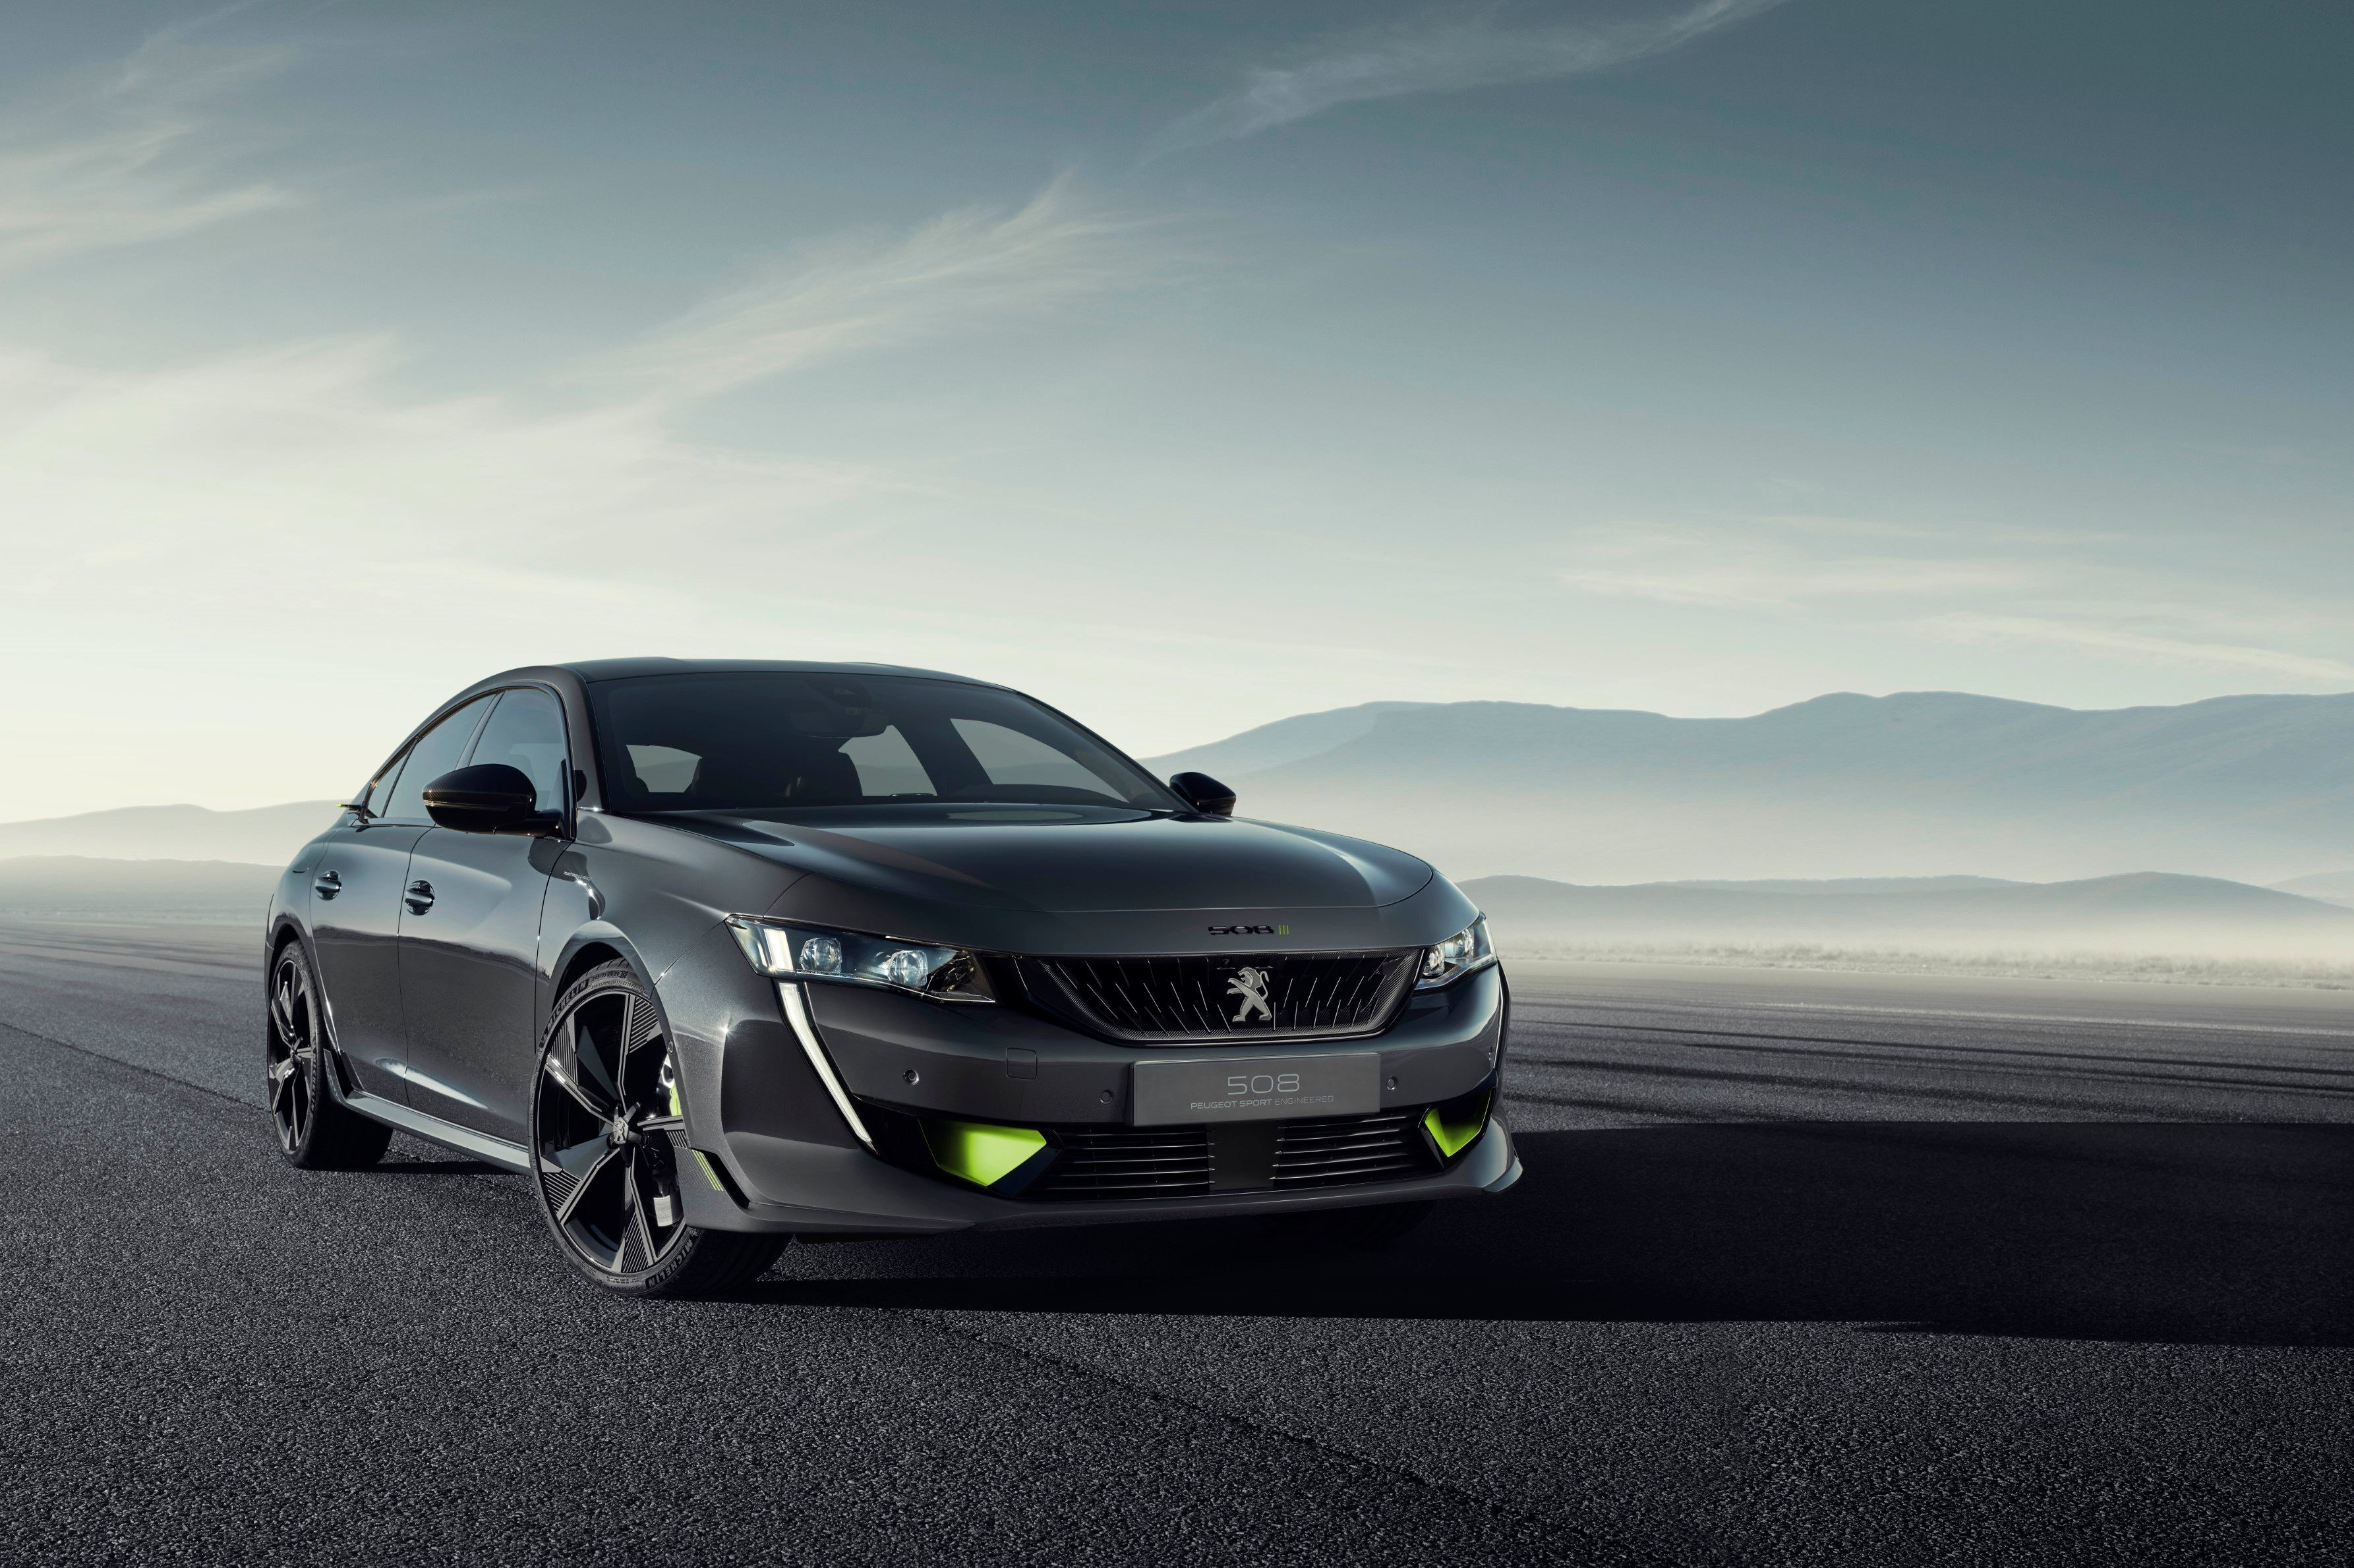 Salone di Ginevra, Peugeot 508 Sport Engineered, sportiva e ibrida